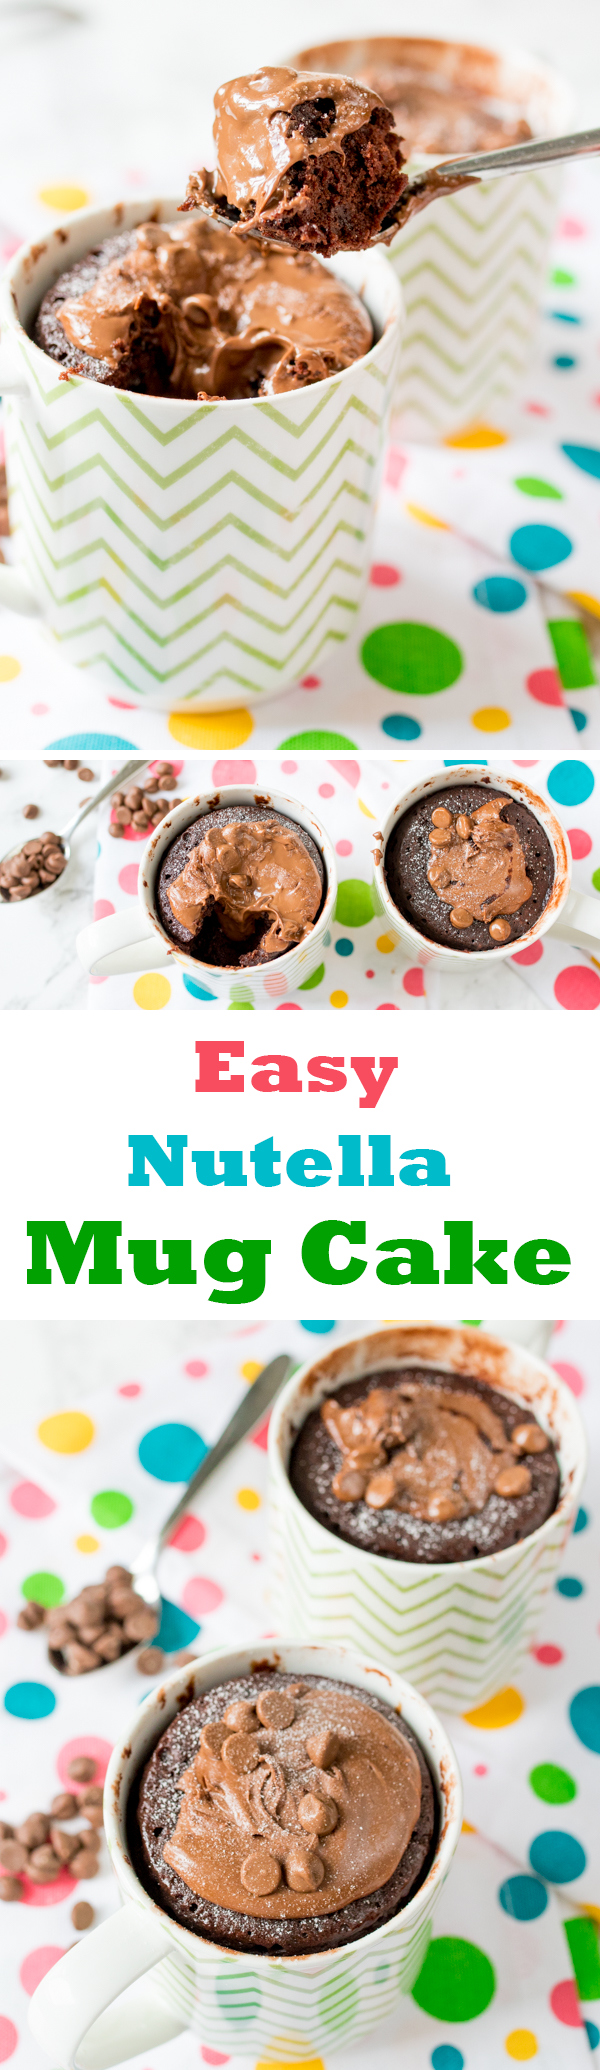 nutella mug cake pin